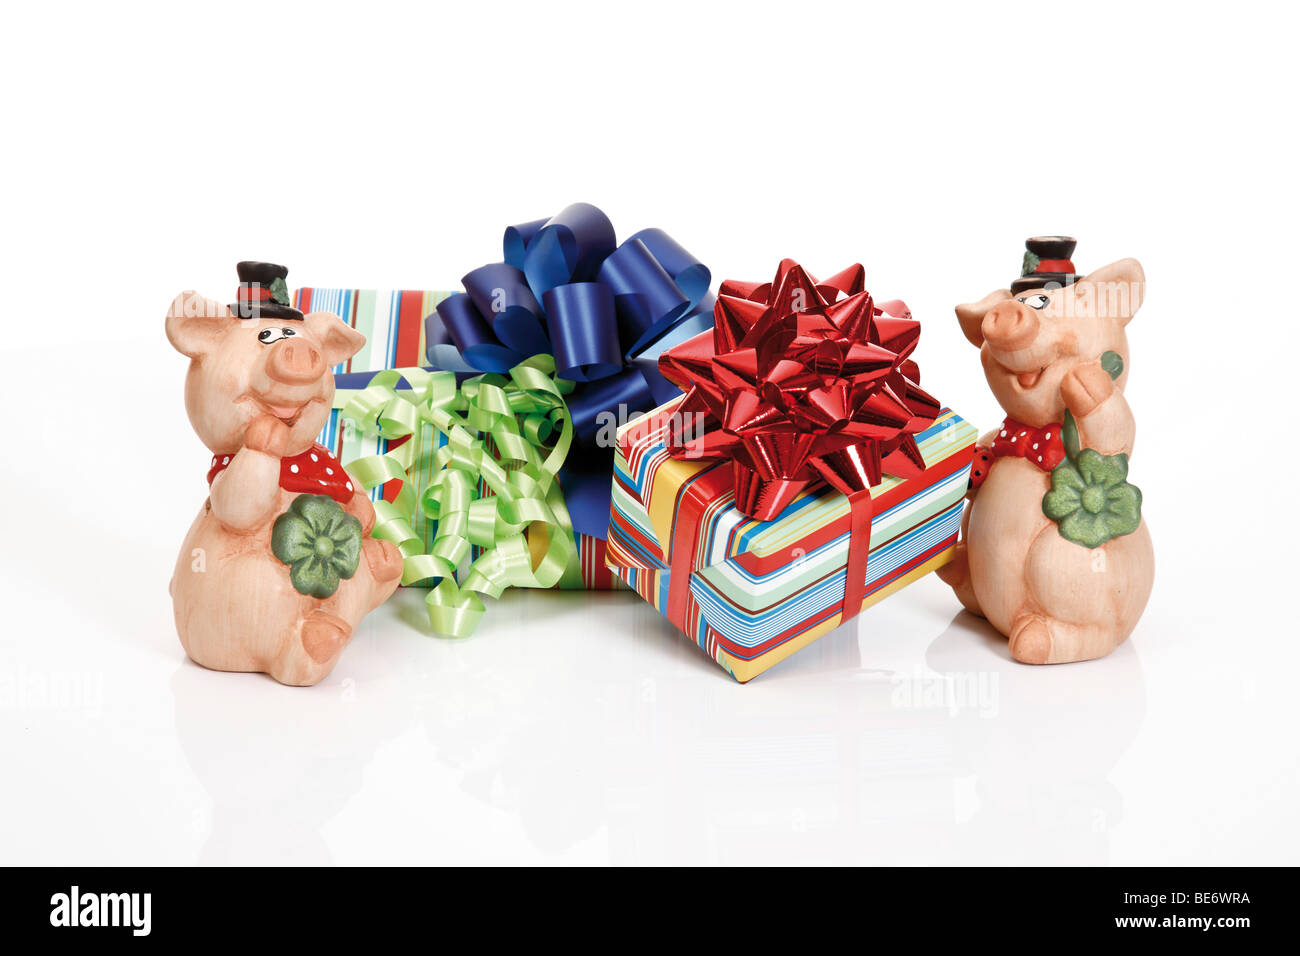 Presents with ribbons and lucky pigs - Stock Image